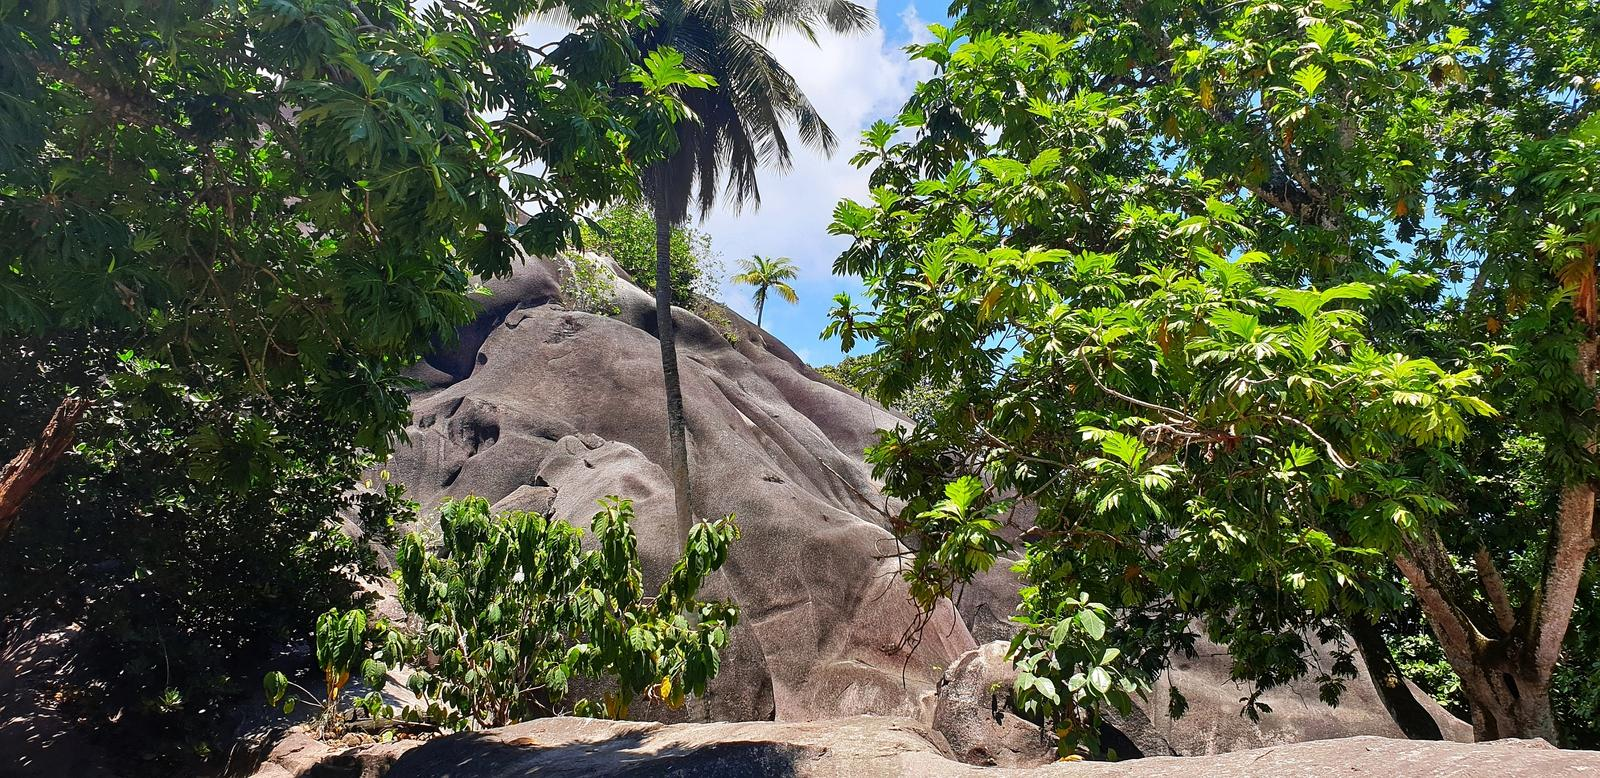 Foto di HRG - Seychellen La Digue Anse Source D Argent - Estate Farm Giant Rock Vanille Plantagen